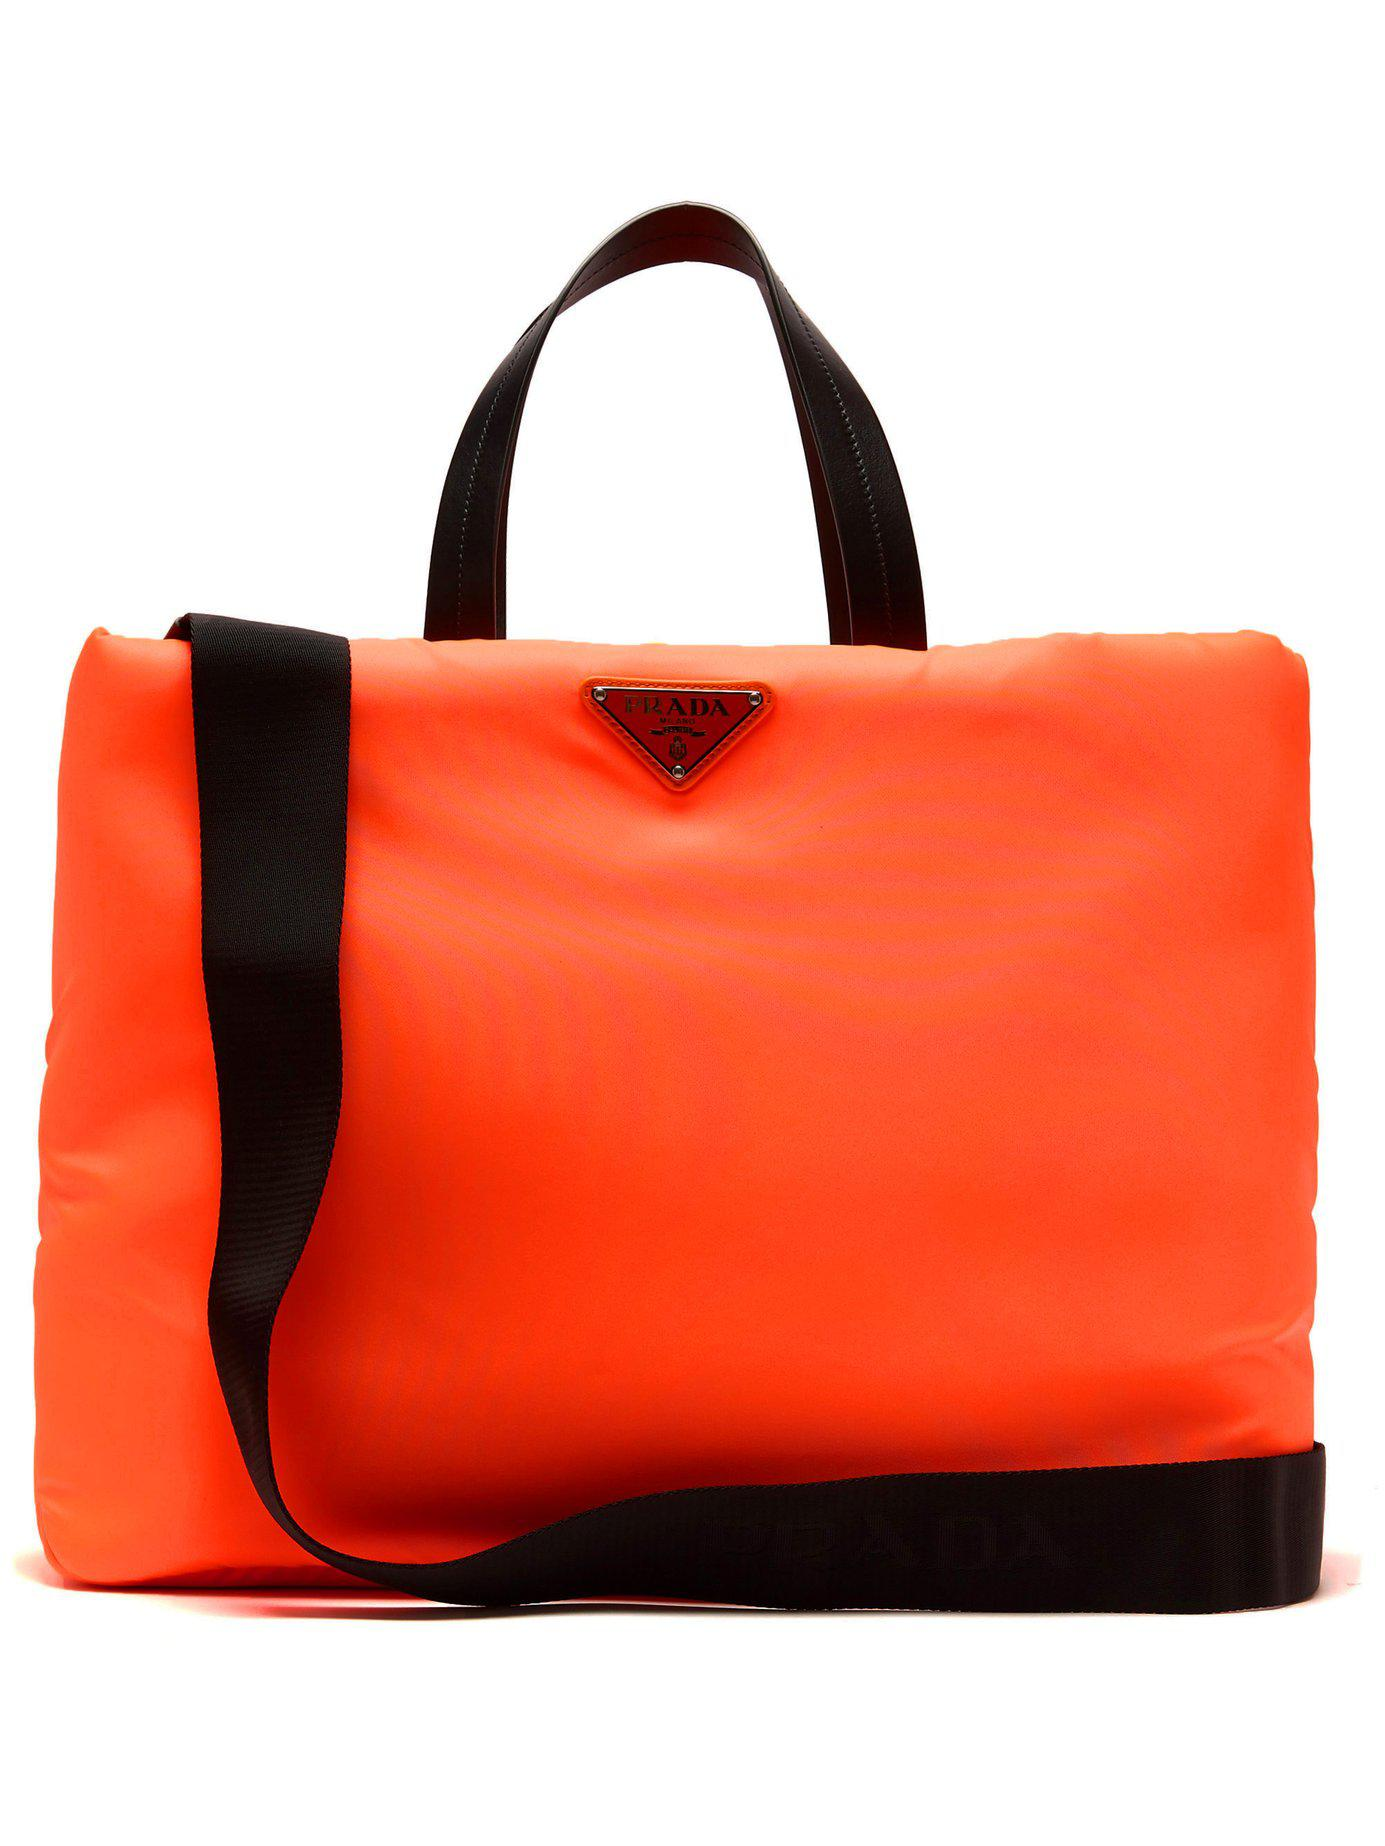 4a10aa06ec2 10fdaa0b43e9 Prada Logo Embellished Padded Nylon Tote Bag in Orange - Lyst  ...